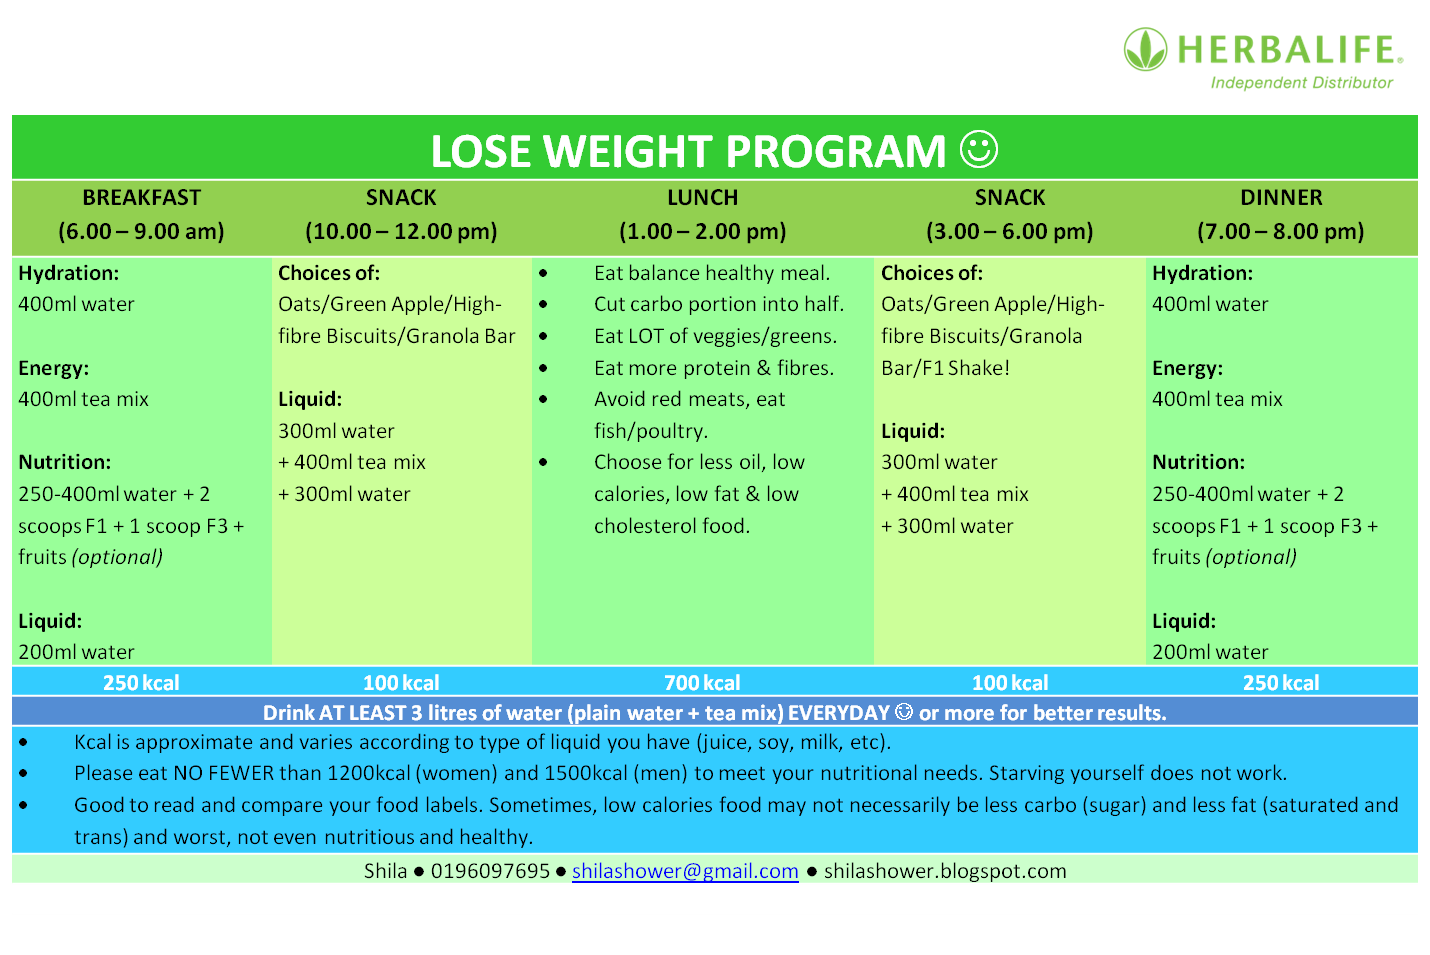 weight loss program kl